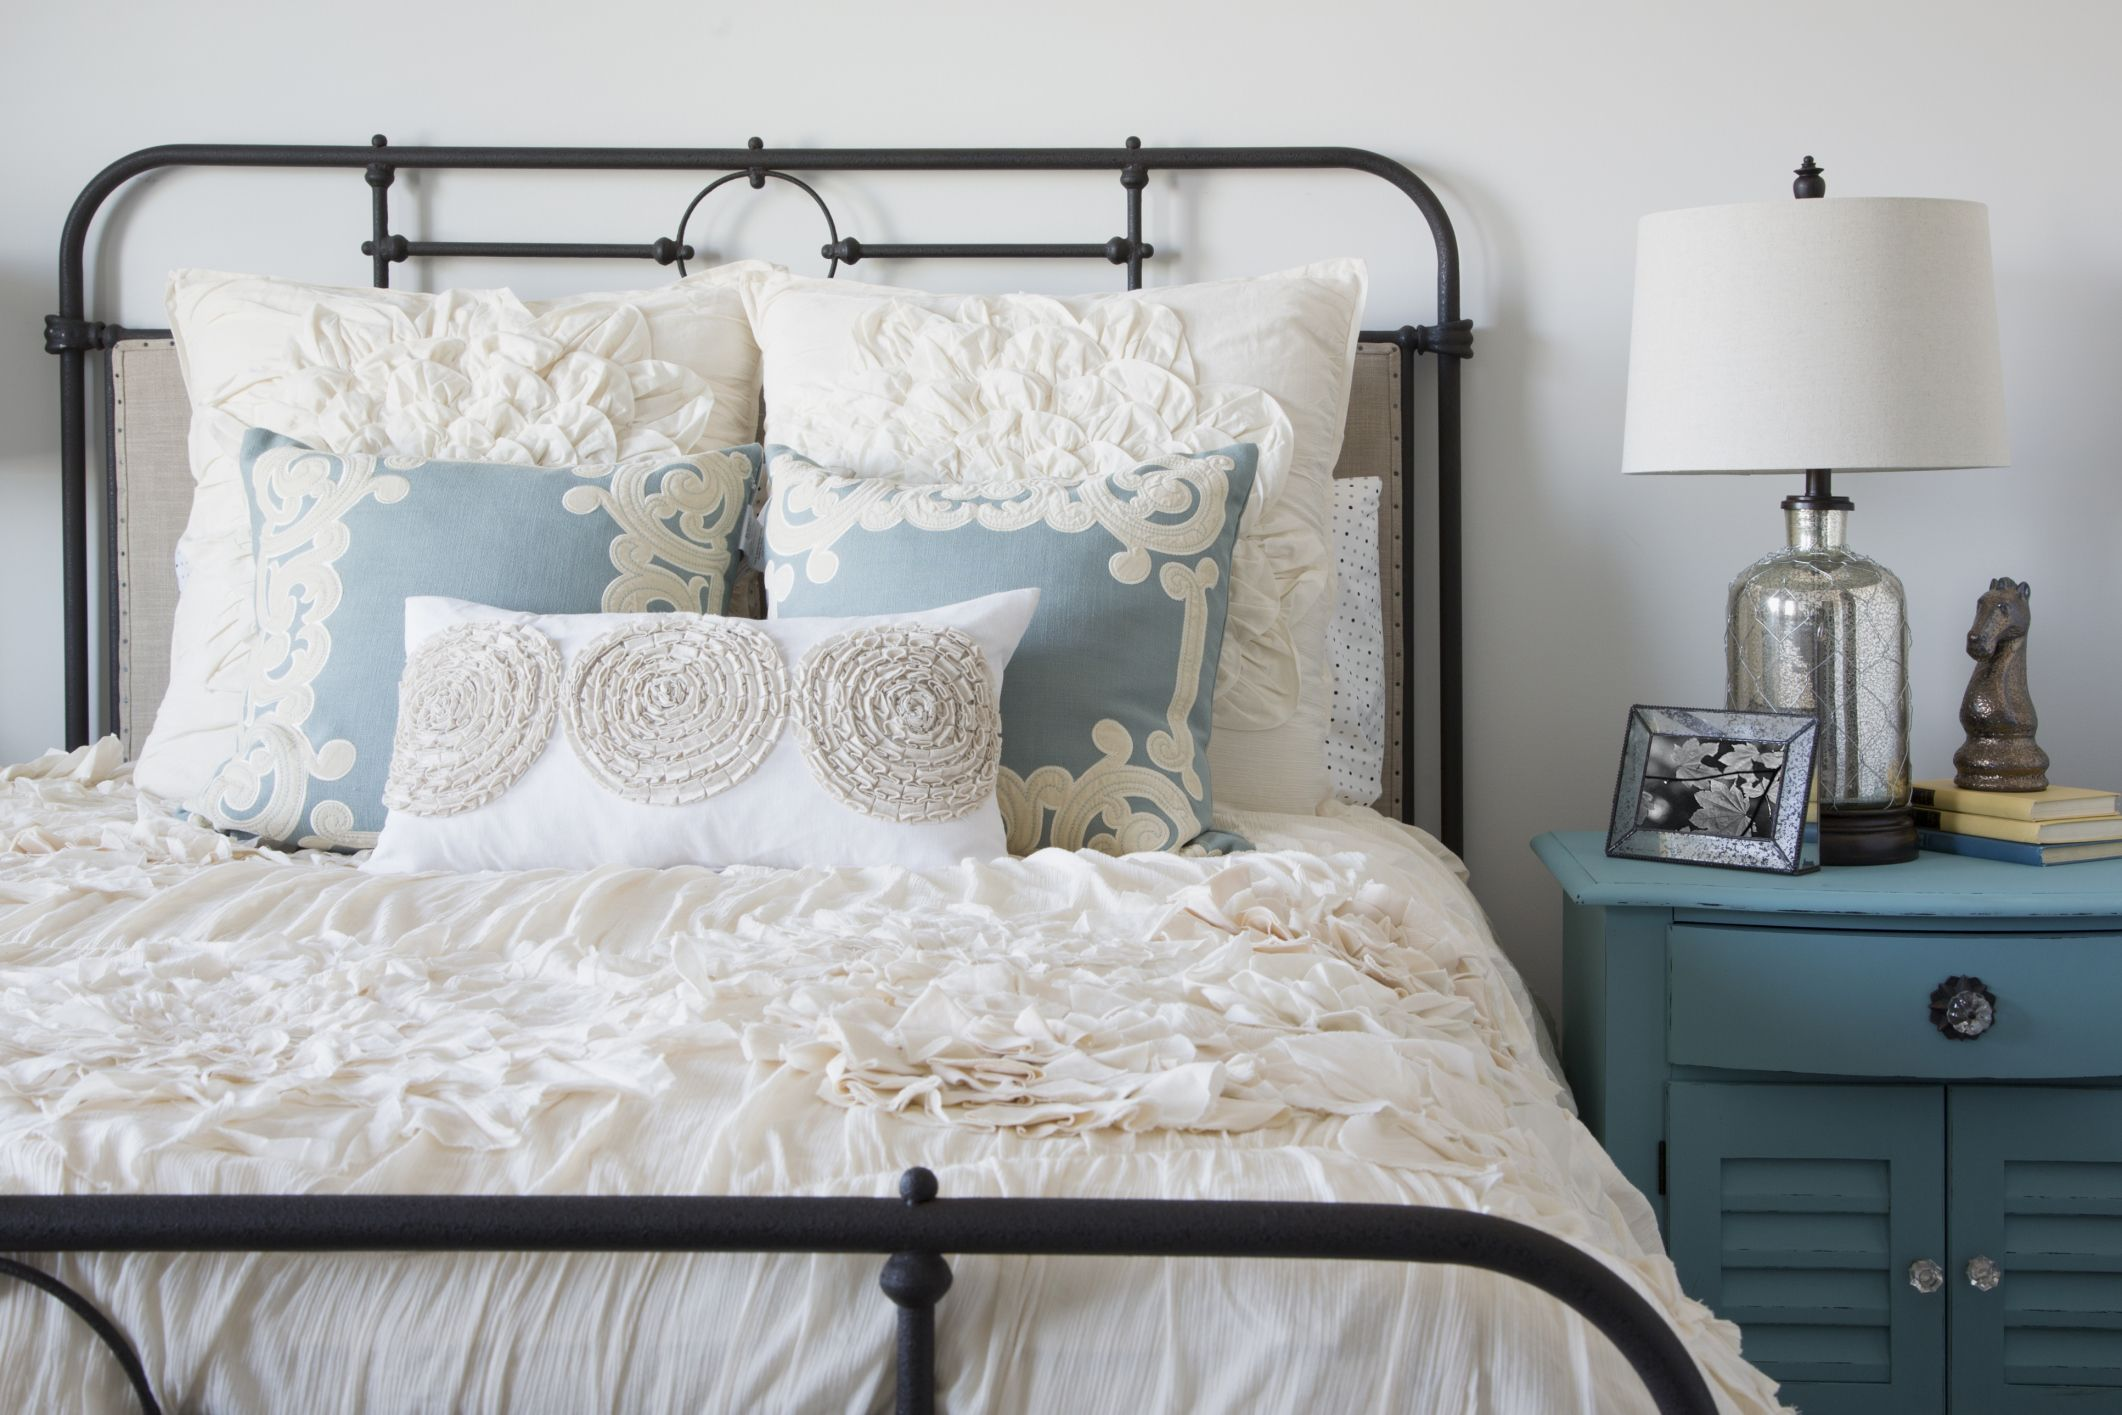 Guest Bedrooms Guest Bedroom Decorating Ideas  Tips For Decorating A Guest Bedroom